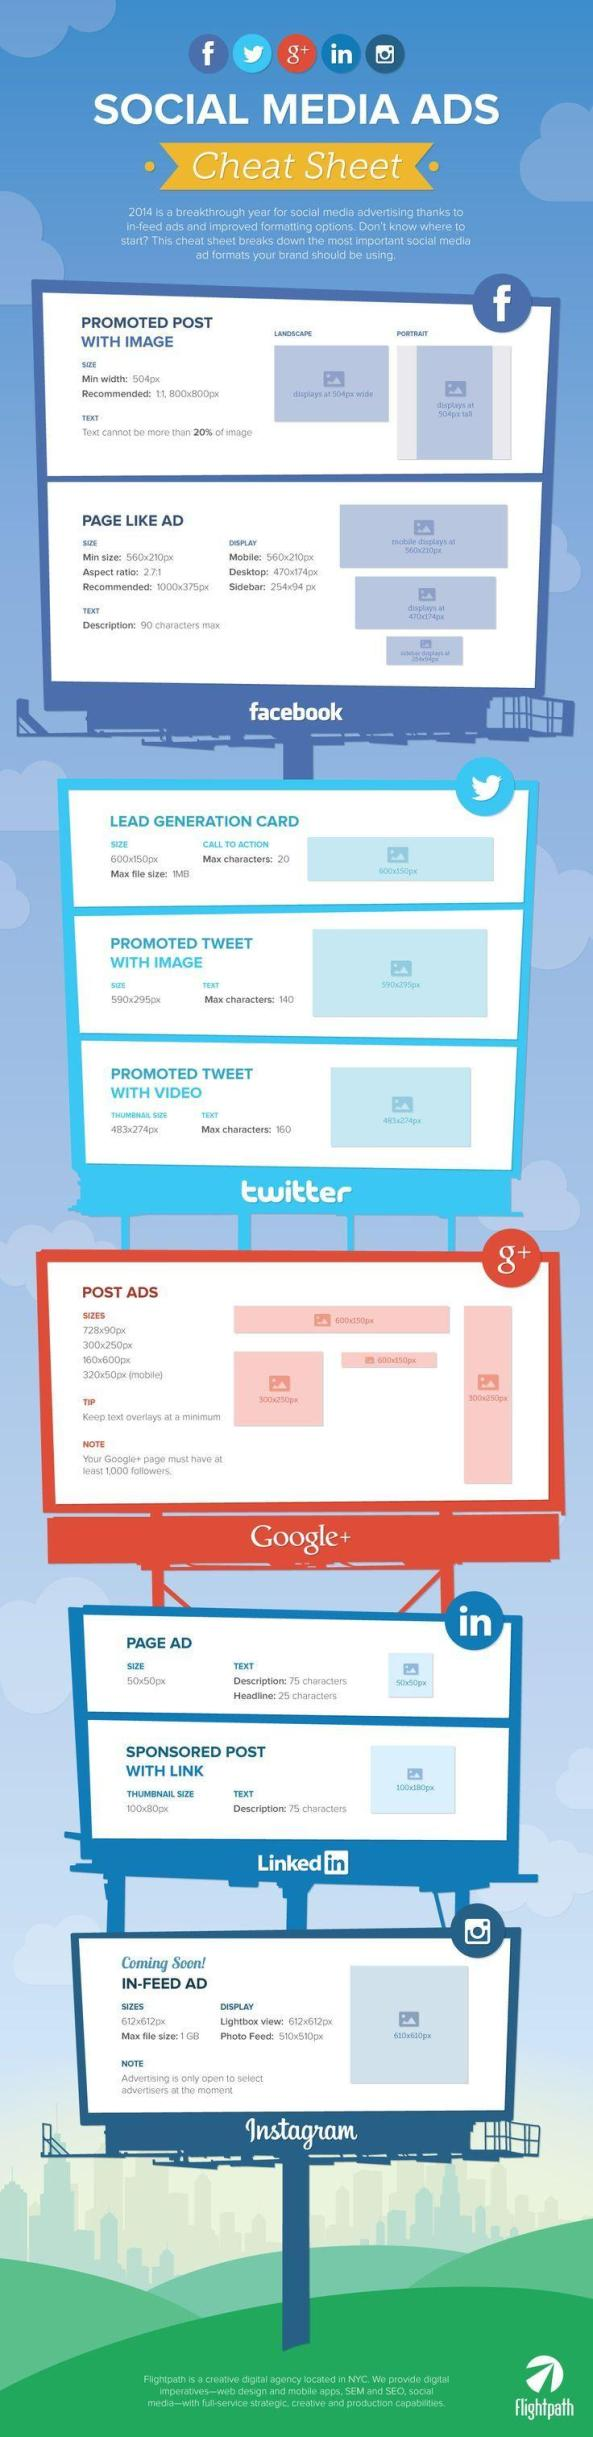 Social ads Guide - Programmatic